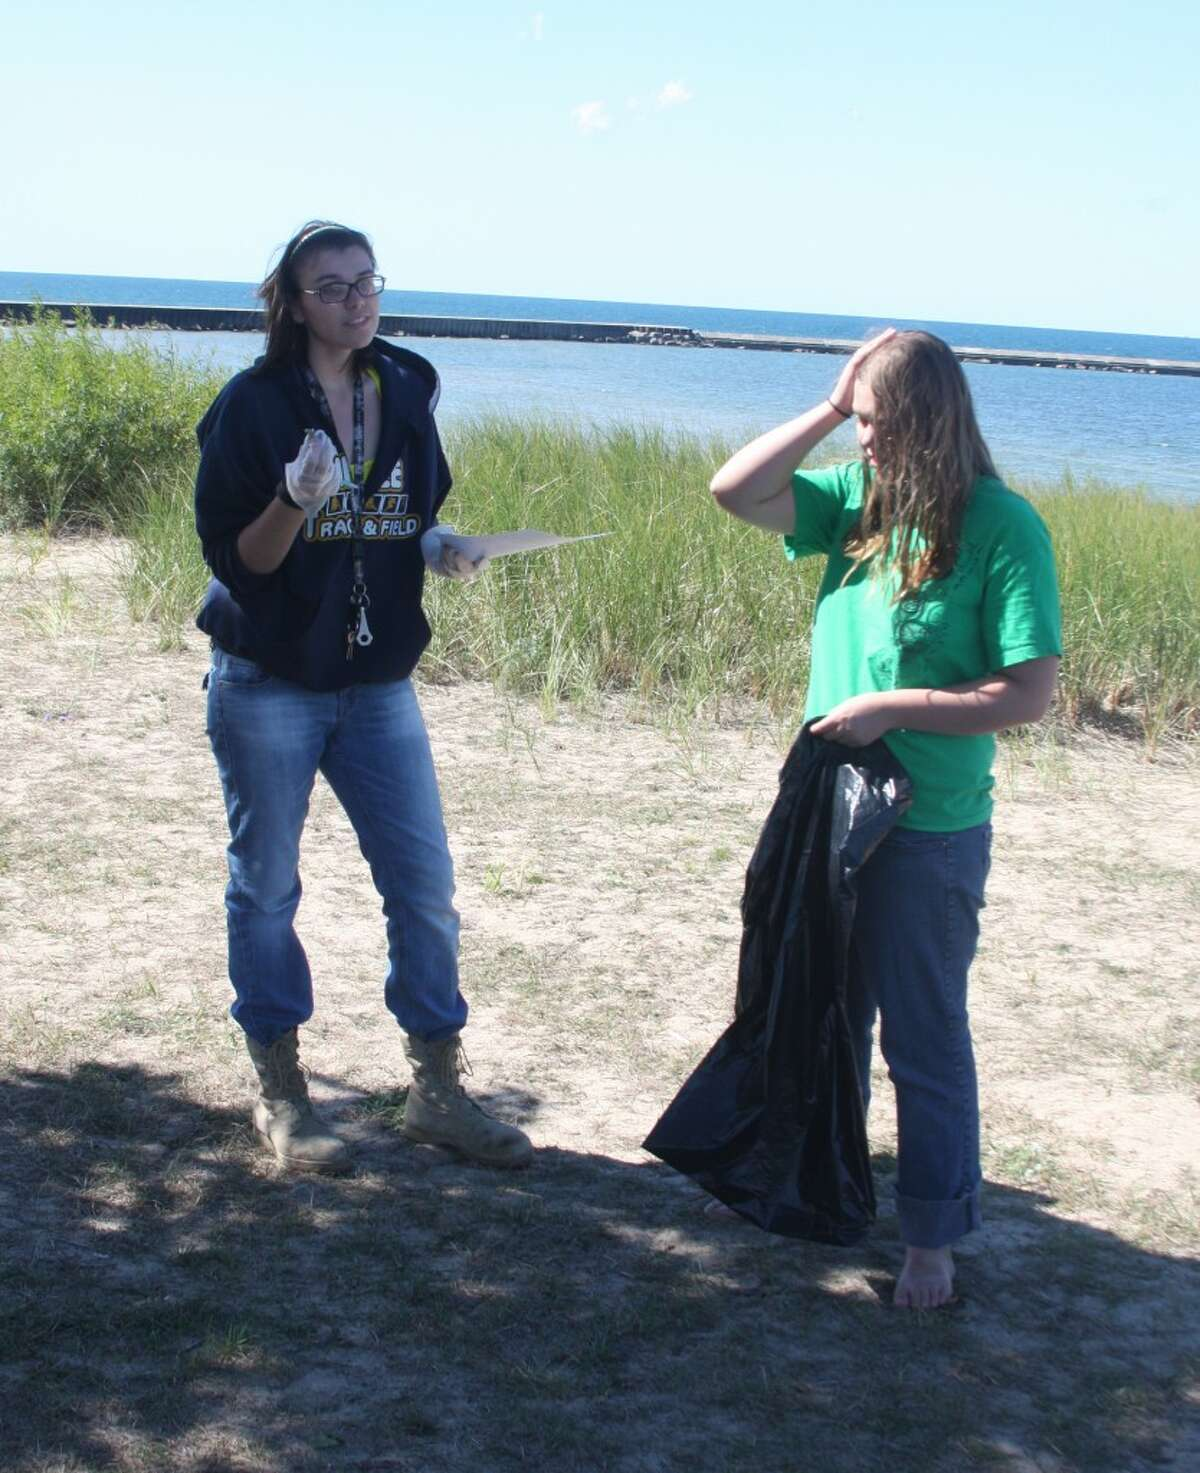 Victoria Frechette and nathalie Fisk discuss the types of things they found as part of the clean-up. The Environmental Science class students did a water study and beach clean-up as part of their studies.(Ken Grabowski/news Advocate)